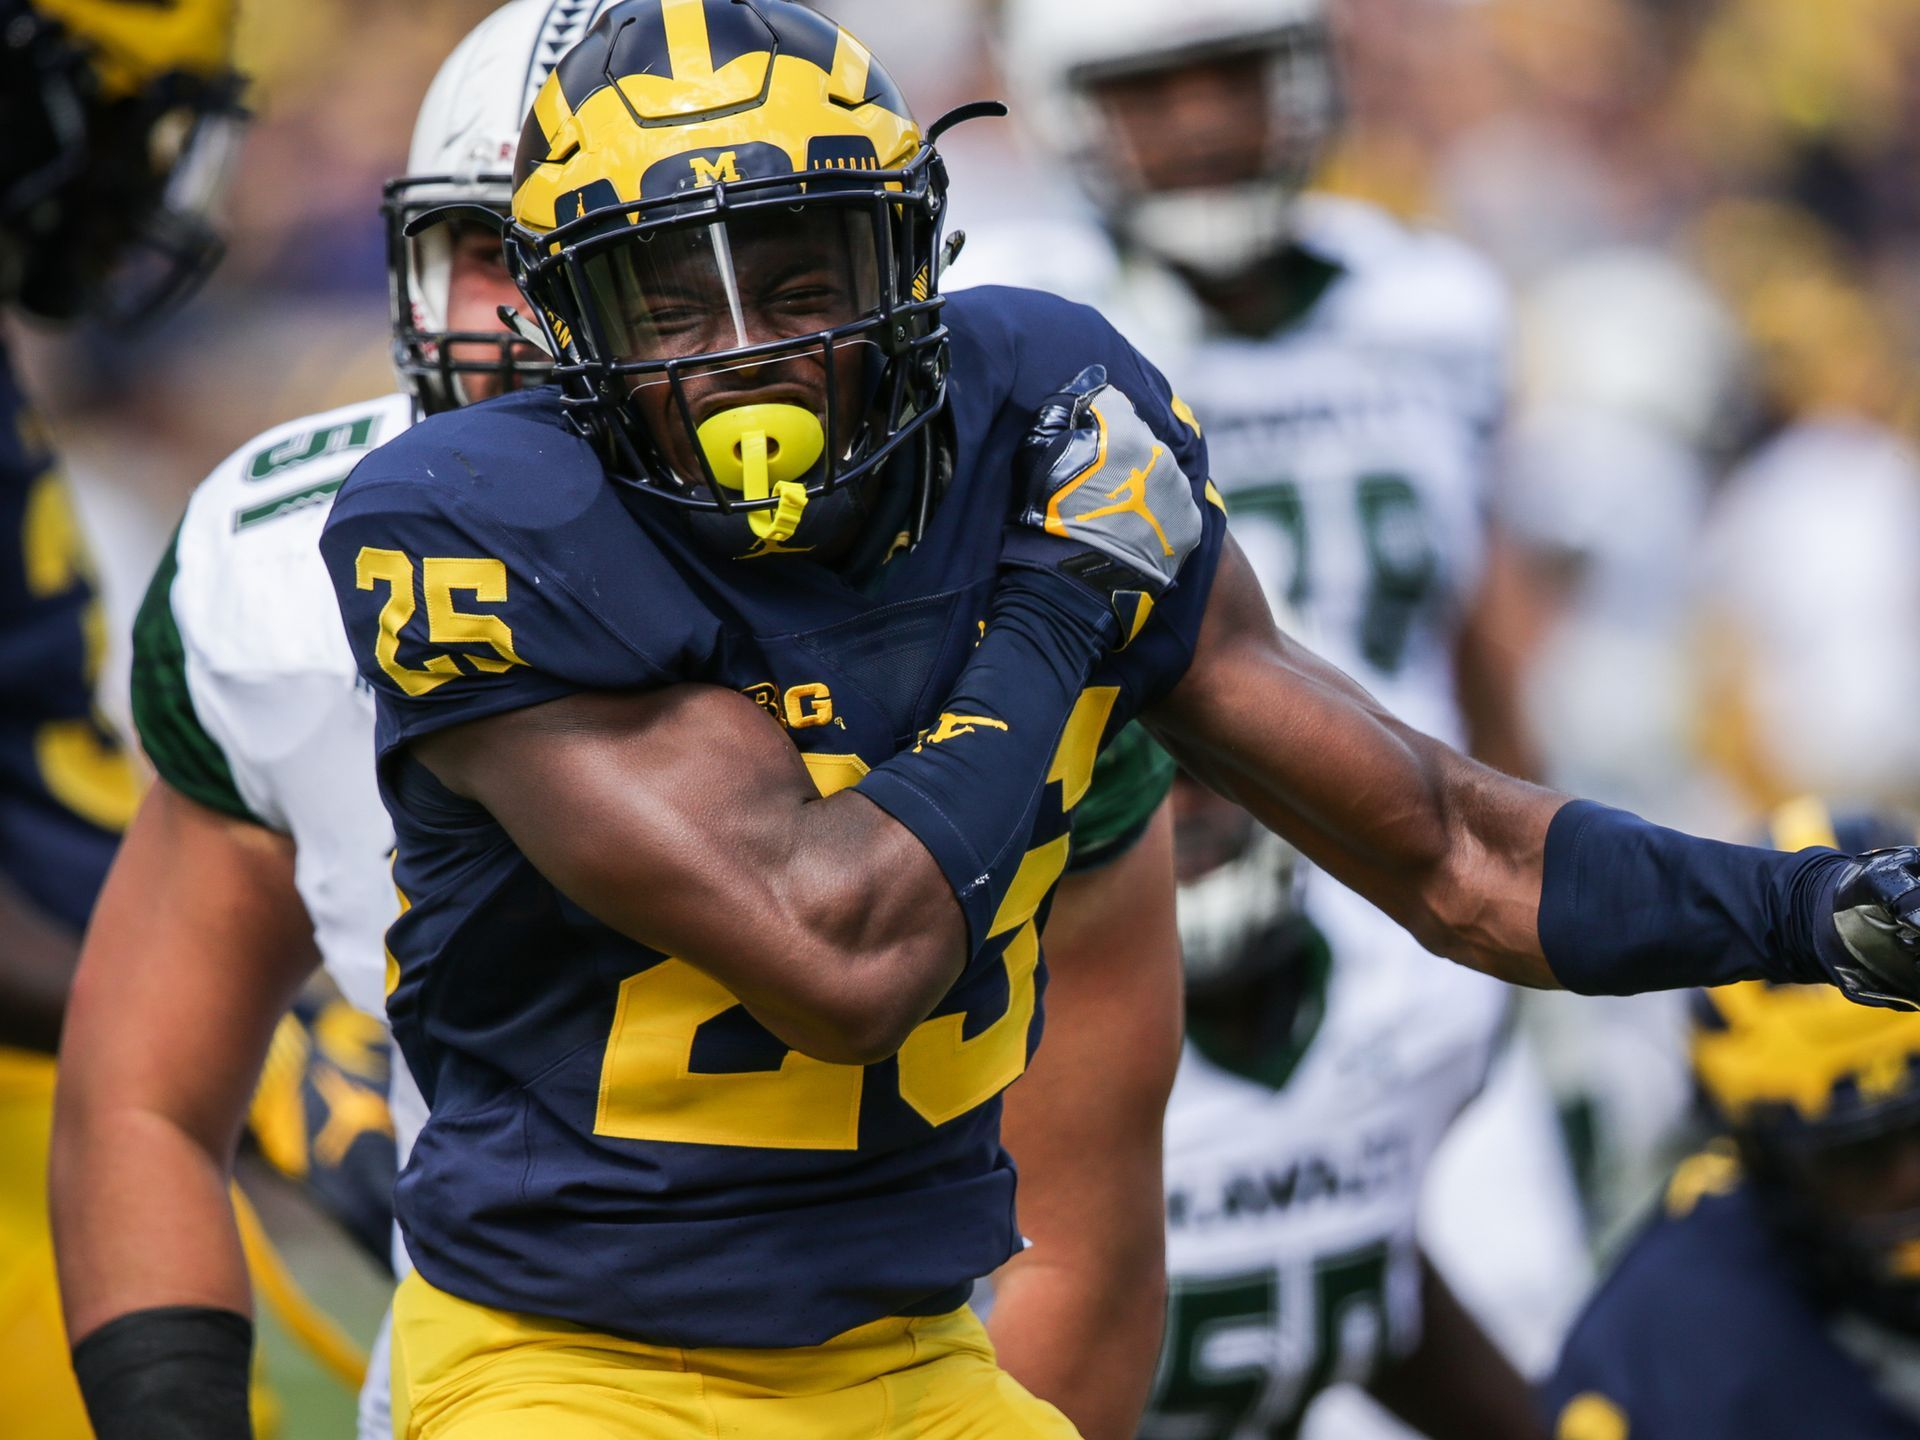 Michigan Wolverines safety Dymonte Thomas after making a